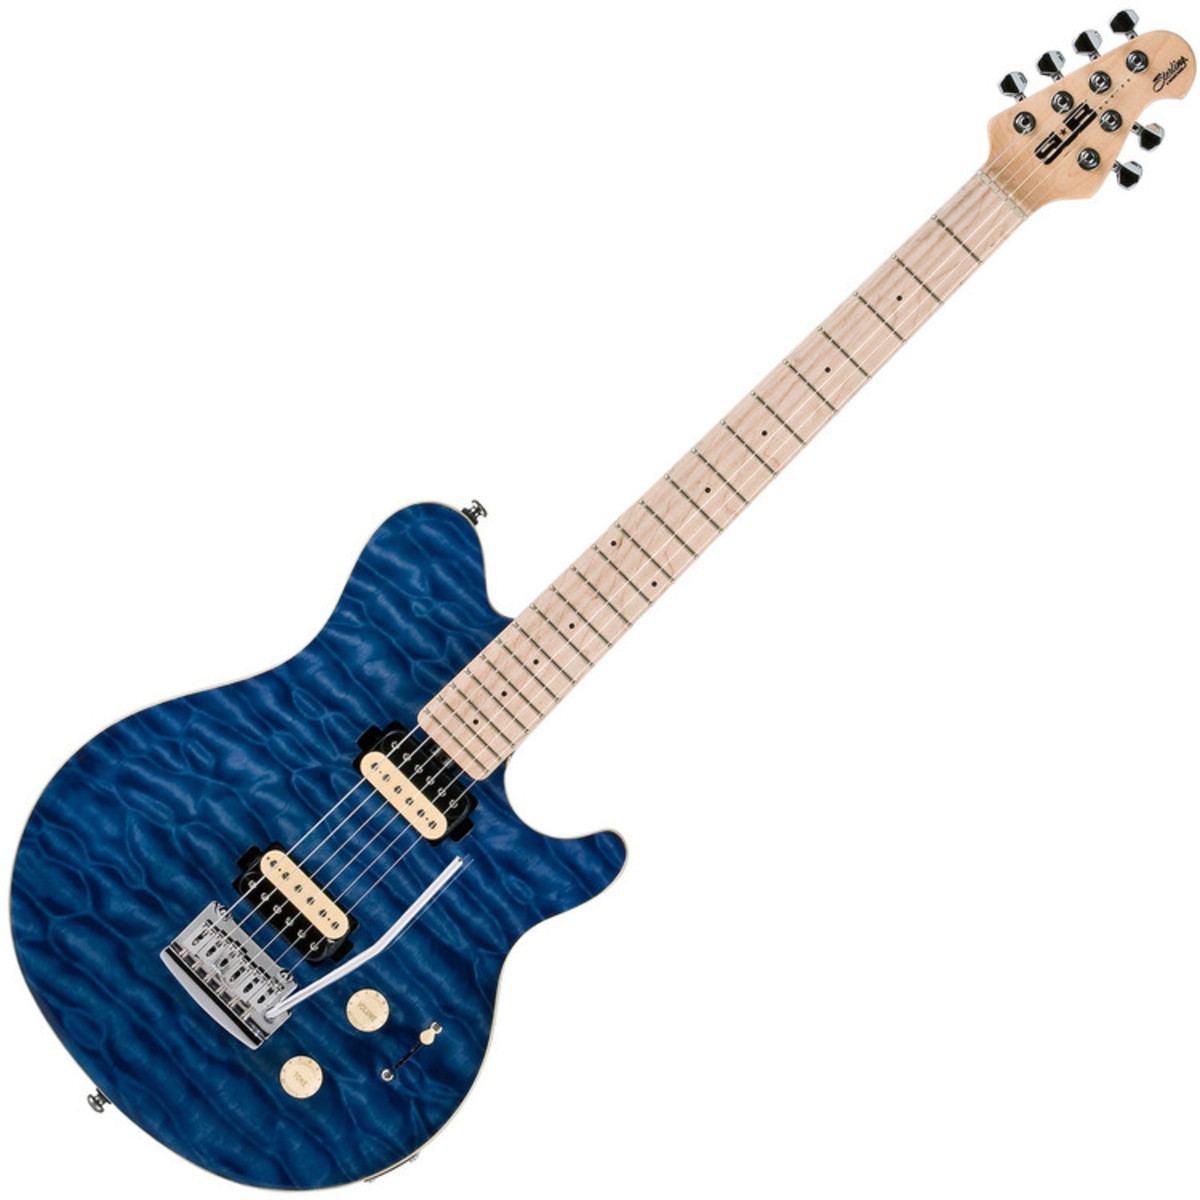 sterling by music man sub ax3 guitar mn transparent blue at. Black Bedroom Furniture Sets. Home Design Ideas